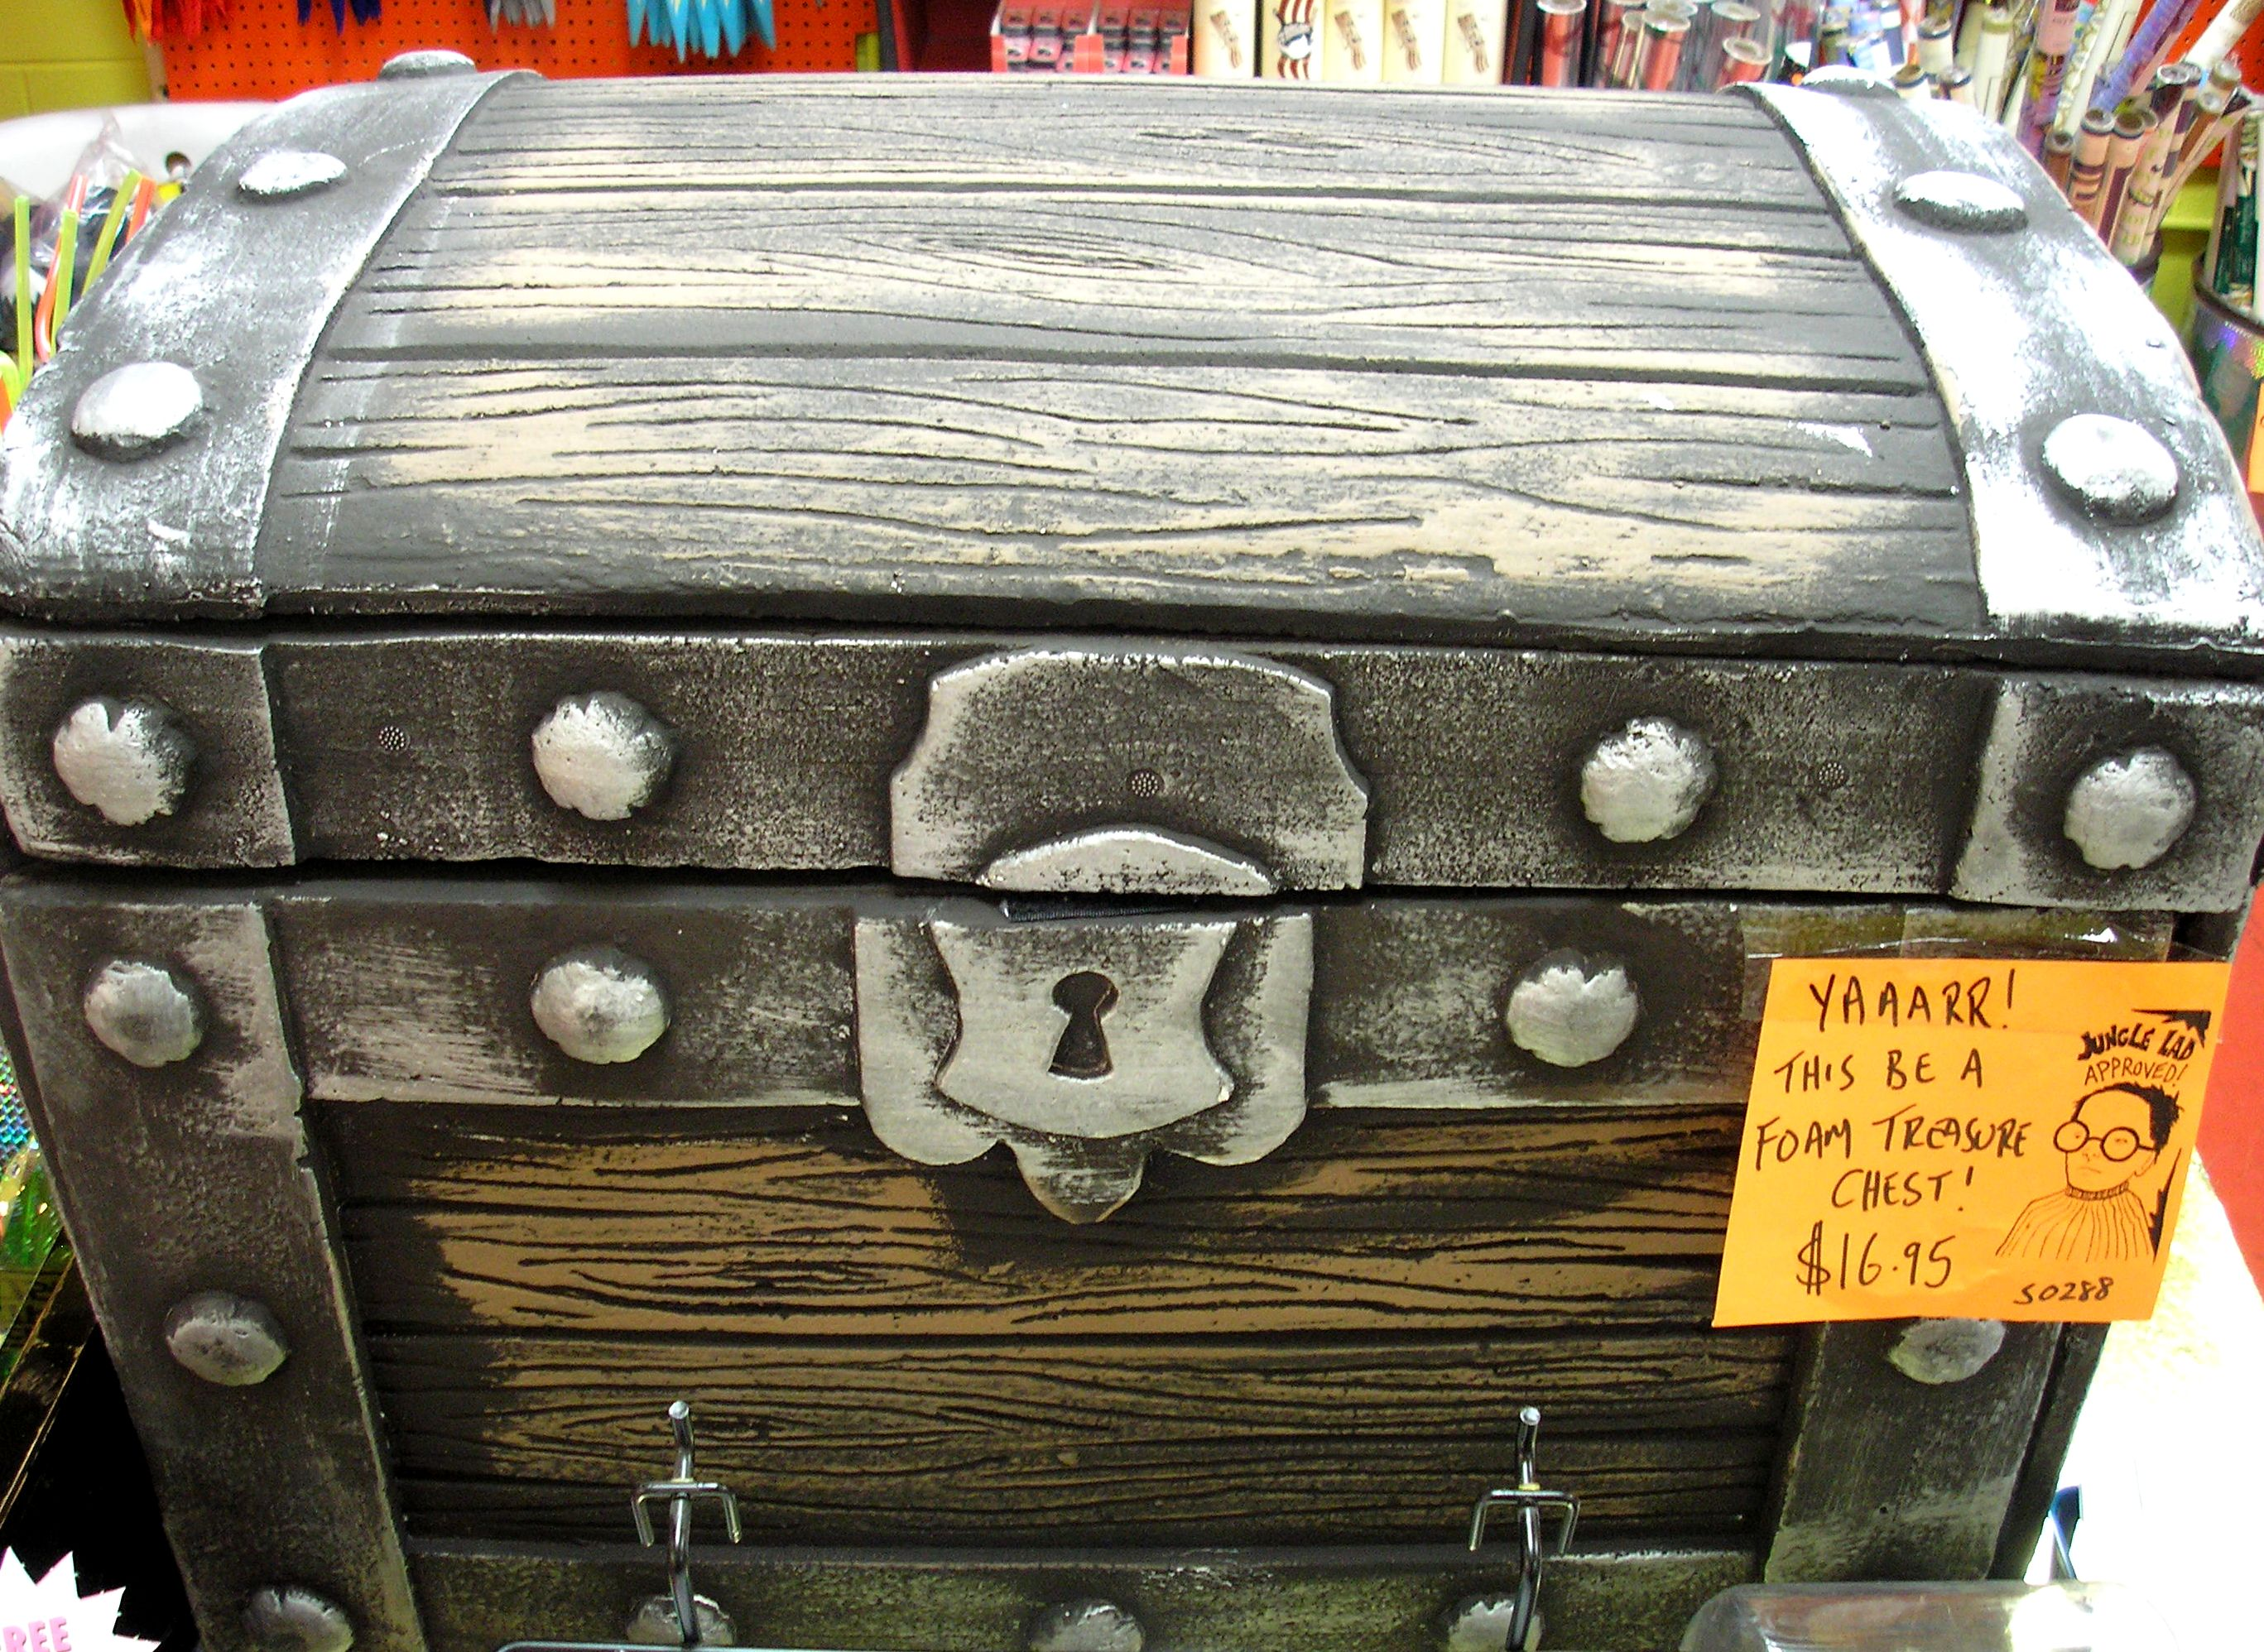 For the home archie mcphee - Large Foam Treasure Chest Archie Mcphee Seattle Store